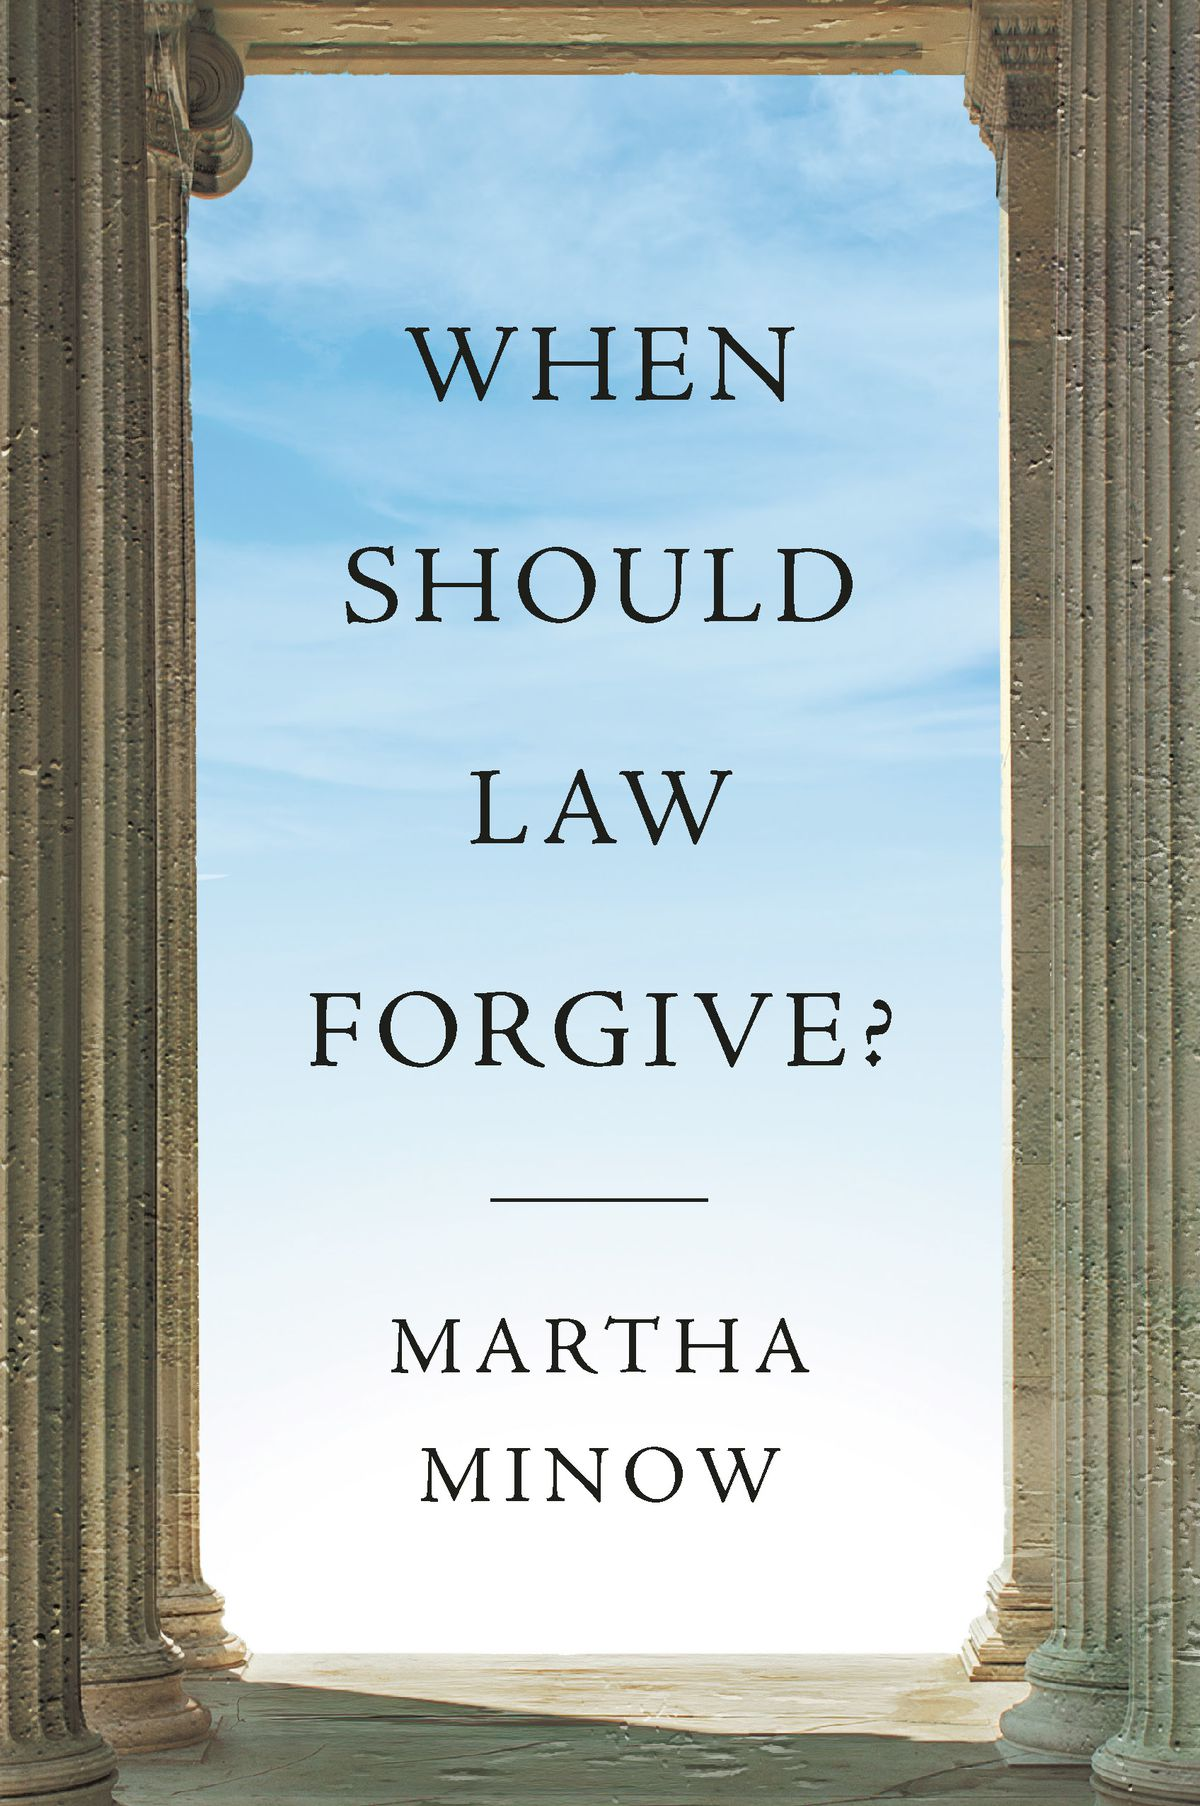 """The cover of the book """"When Should Law Forgive?"""" by Martha Minow shows a view through Greek building columns to a blue sky with clouds."""